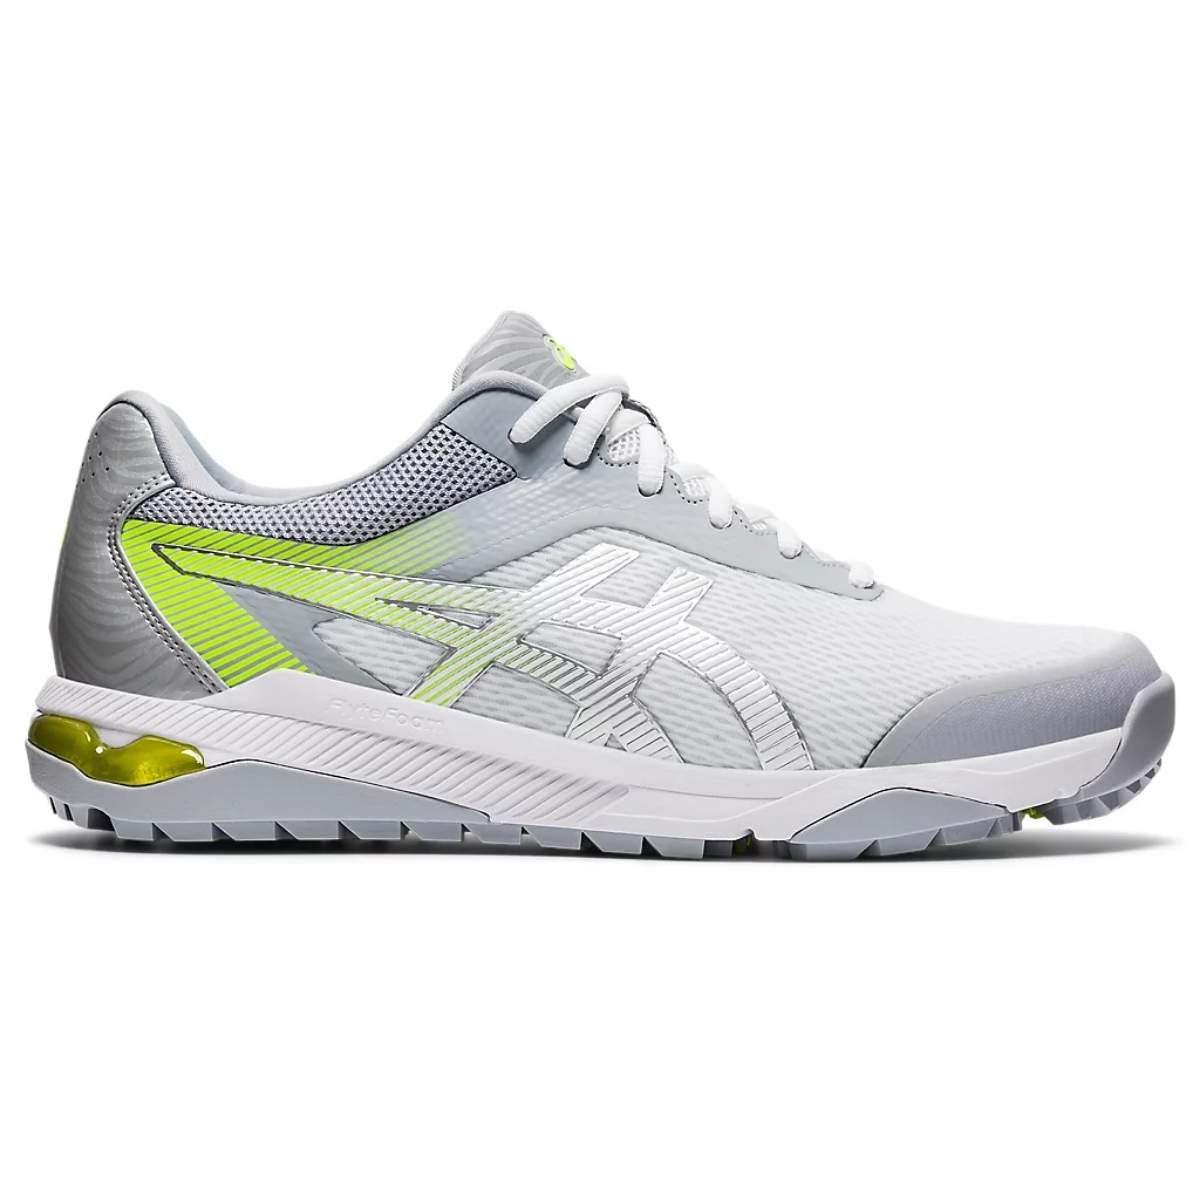 Asics Men's Gel Course Ace Golf Shoe - White